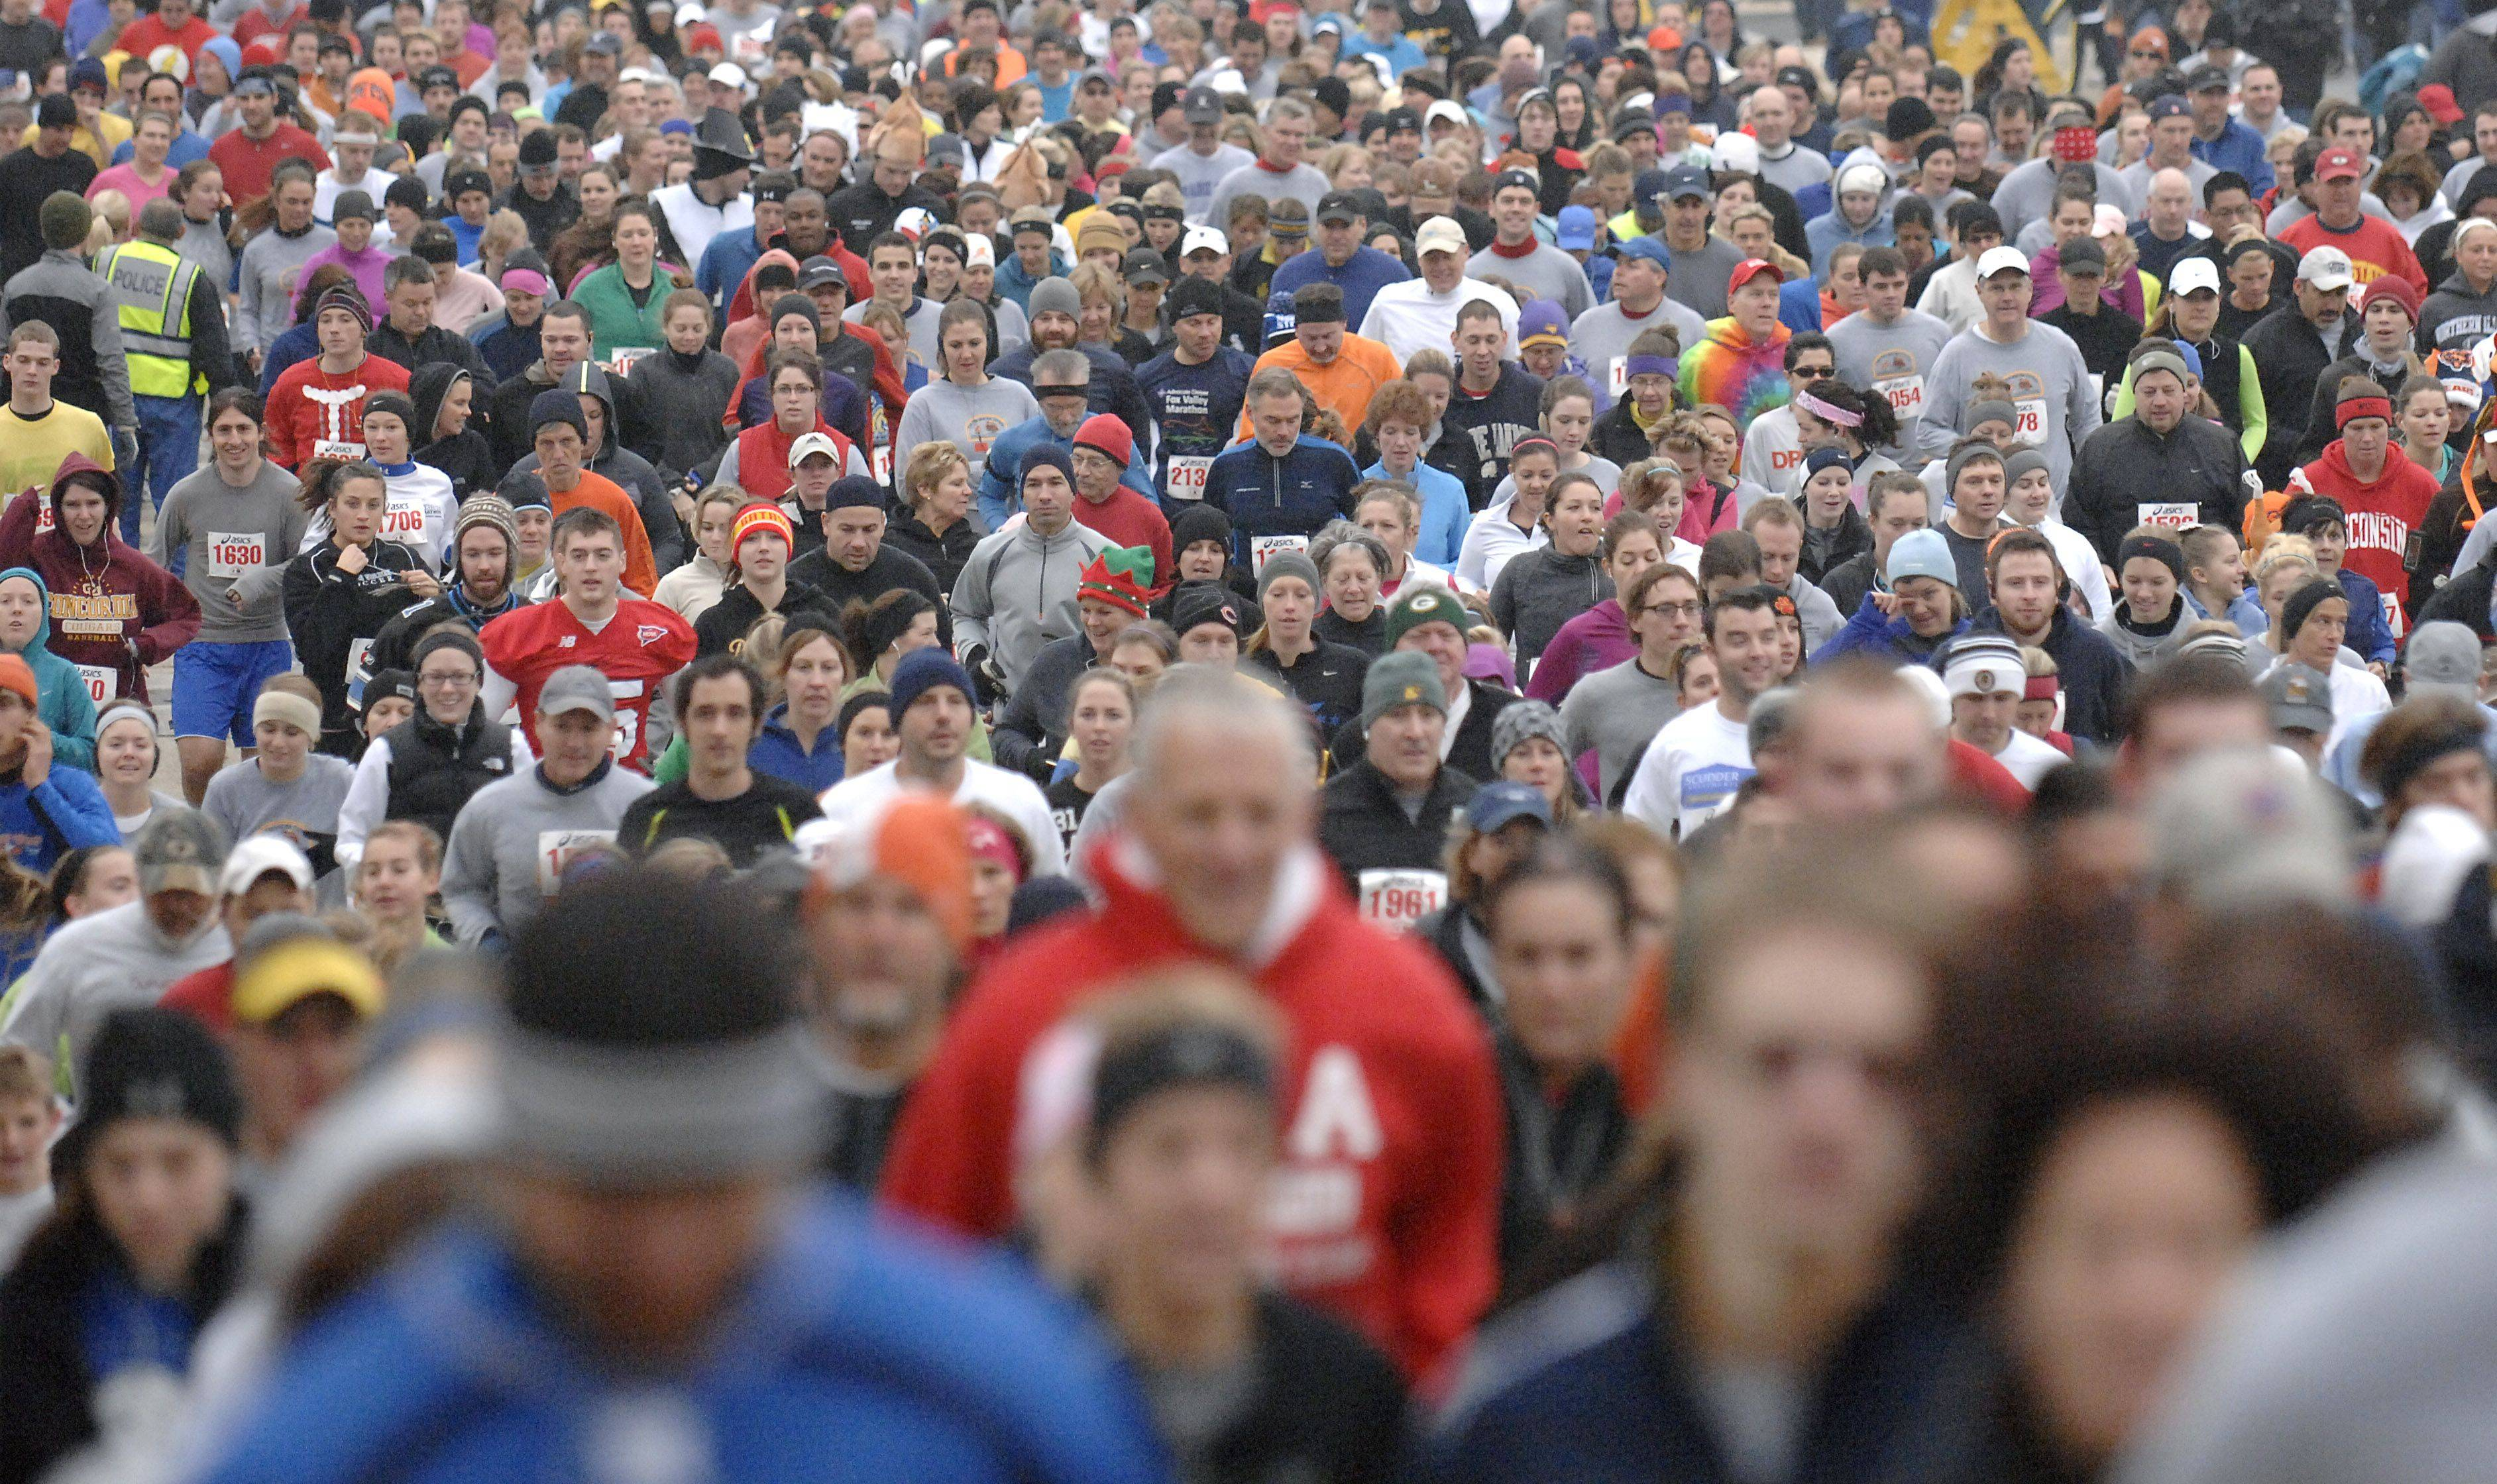 Hundreds take off for the start of the 15th annual Fox and the Turkey four-mile run in Batavia on Thanksgiving morning.